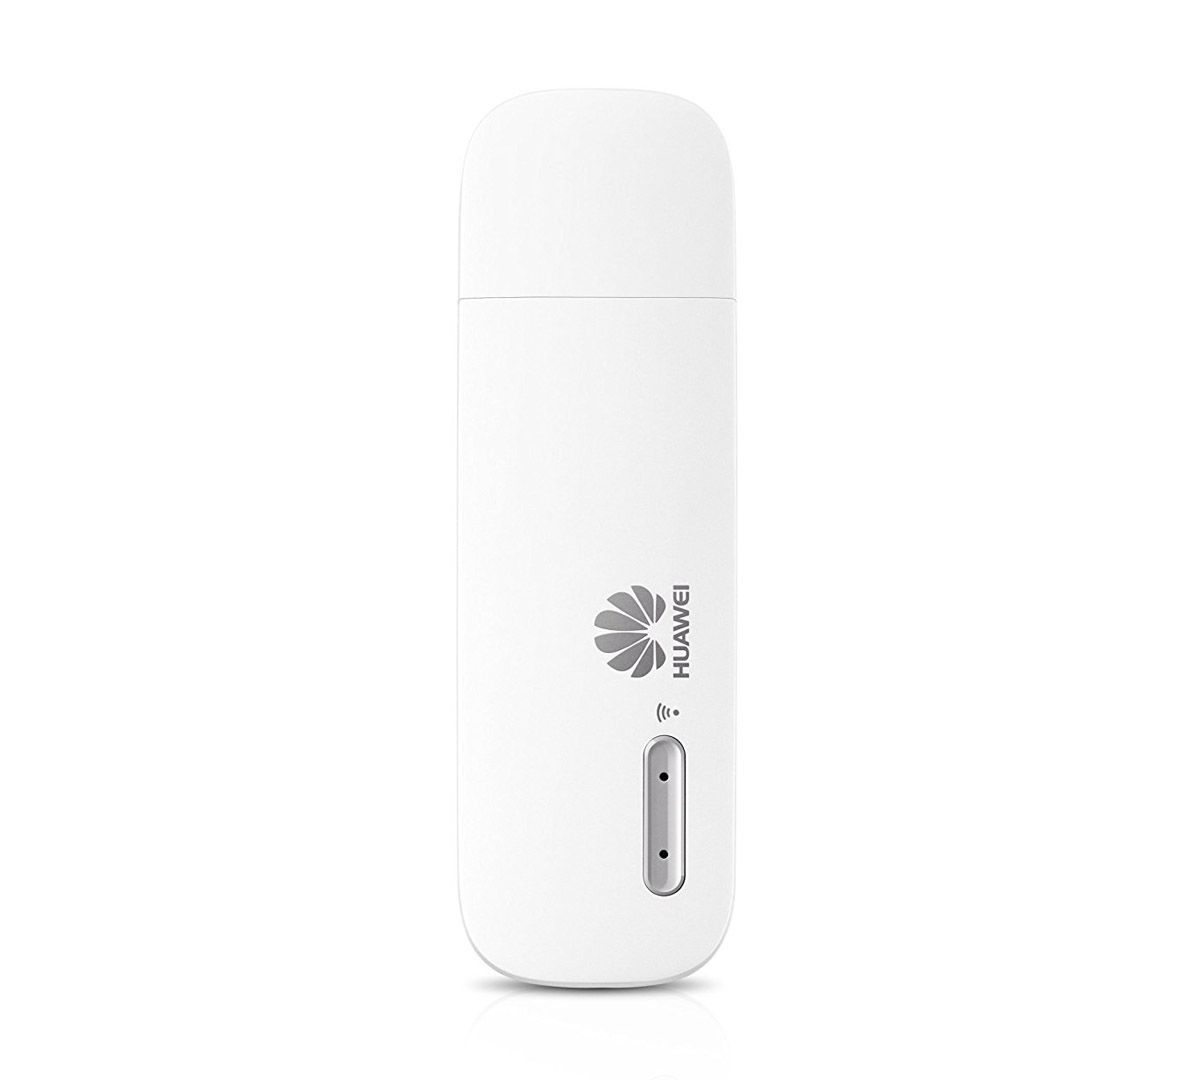 HUAWEI E8231 3G WiFi Hotspot is a mobile WiFi dongle